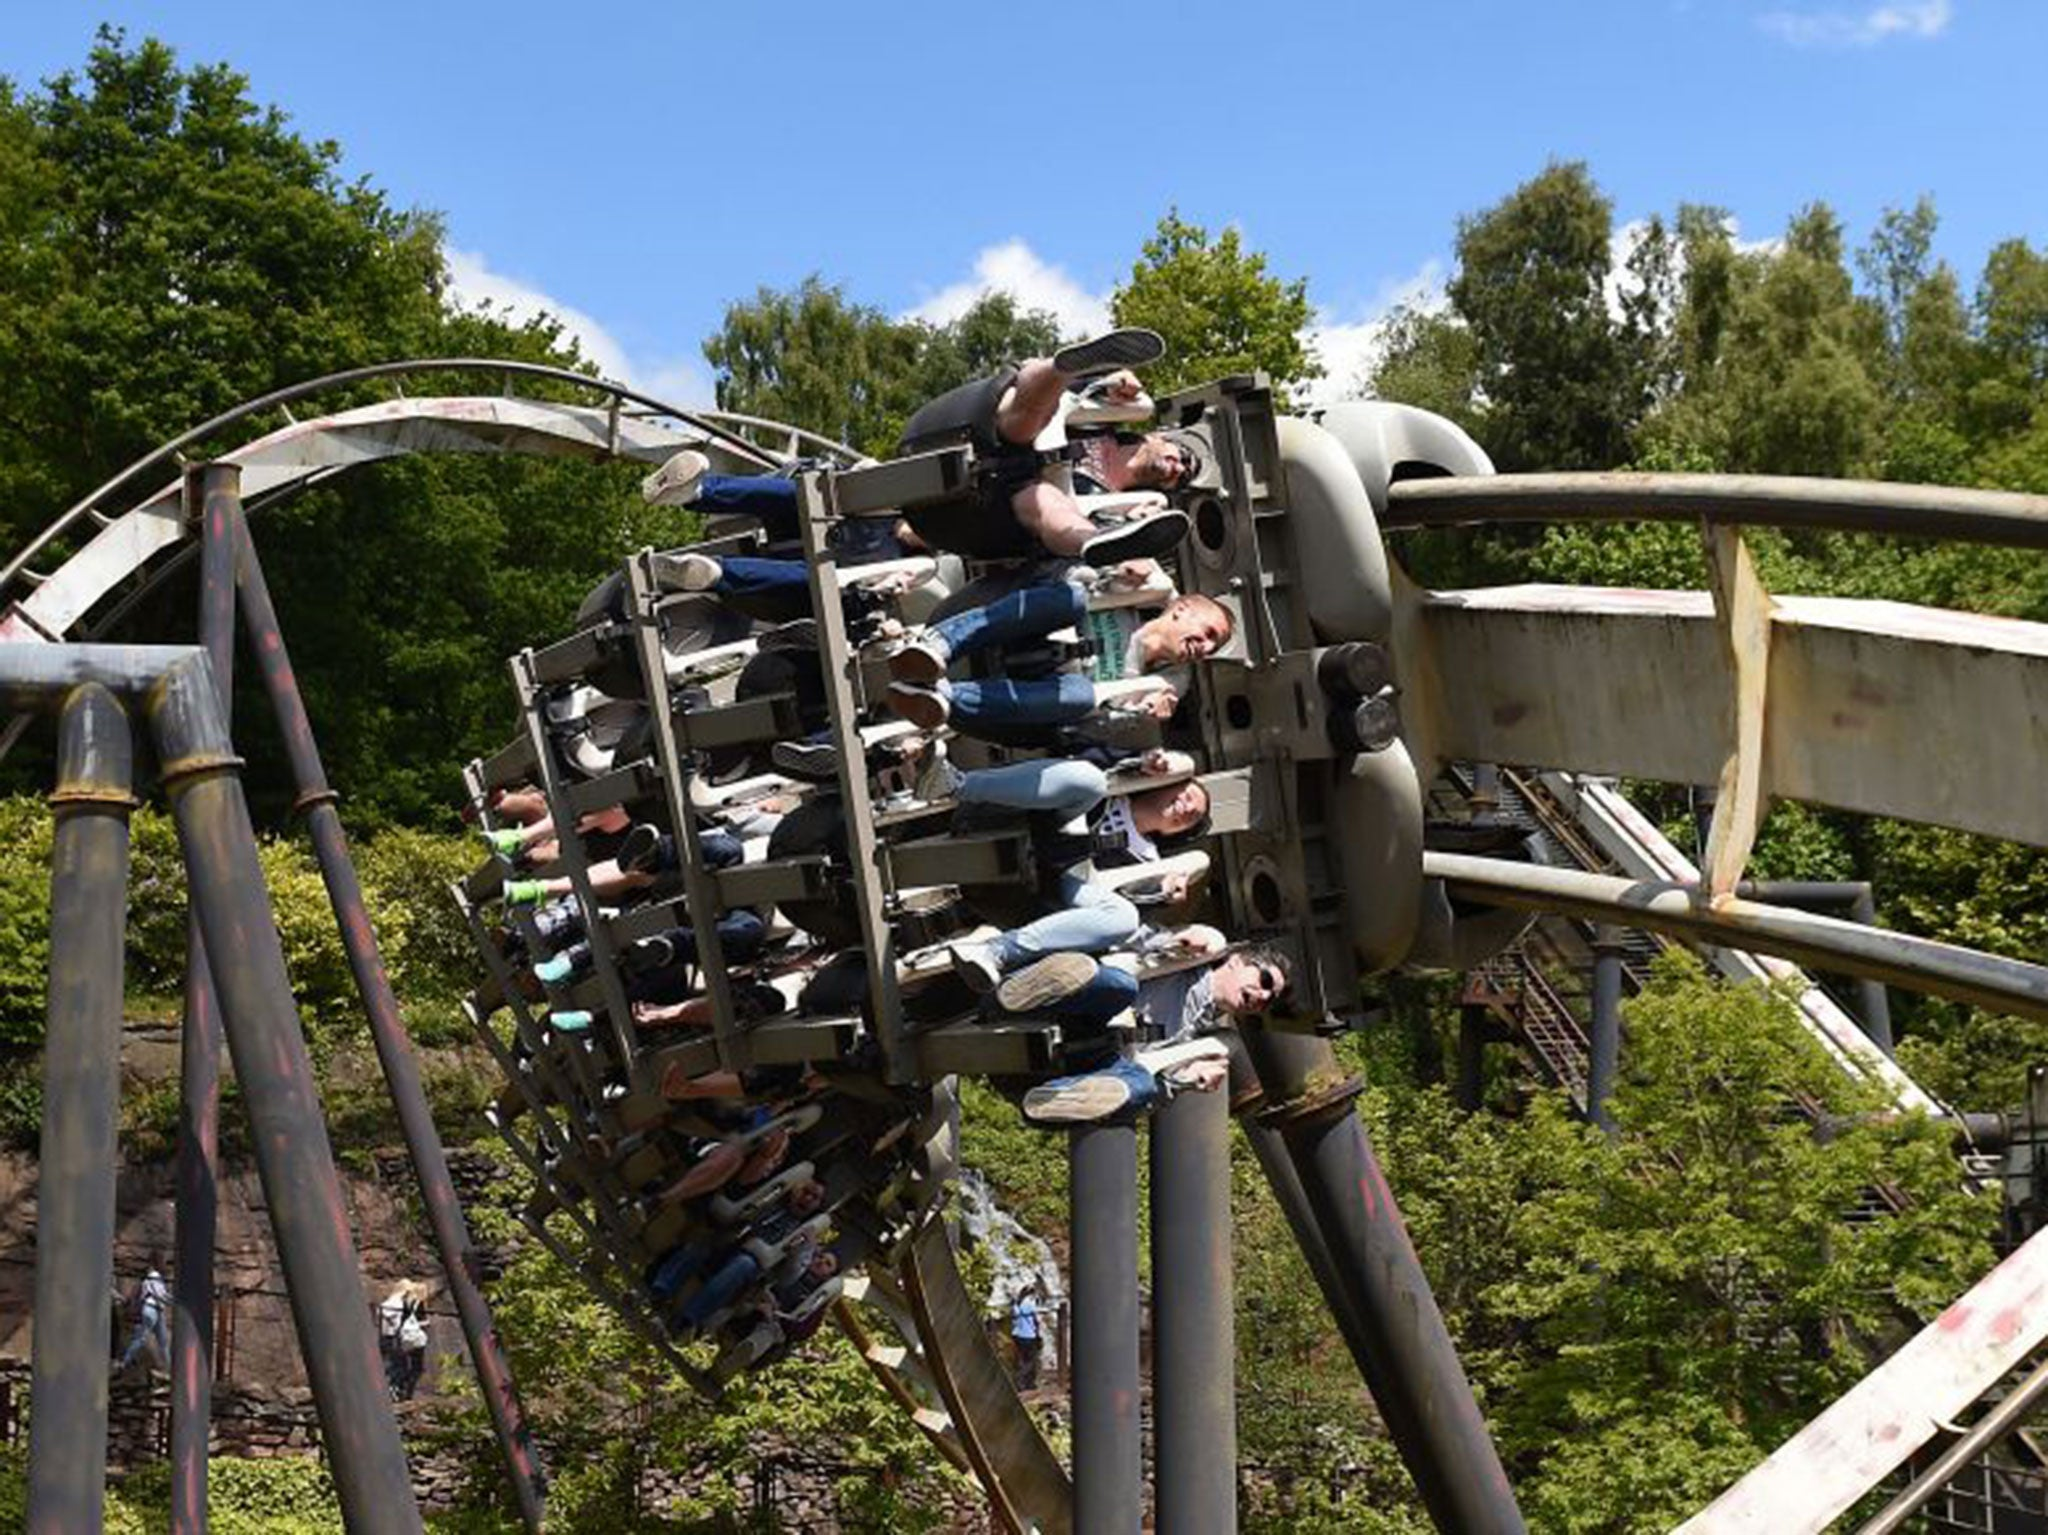 Http www alton towers co uk pages theme park - London And Manchester Terror Attacks Have Hit Theme Park Visitor Numbers Says Alton Towers Owner The Independent